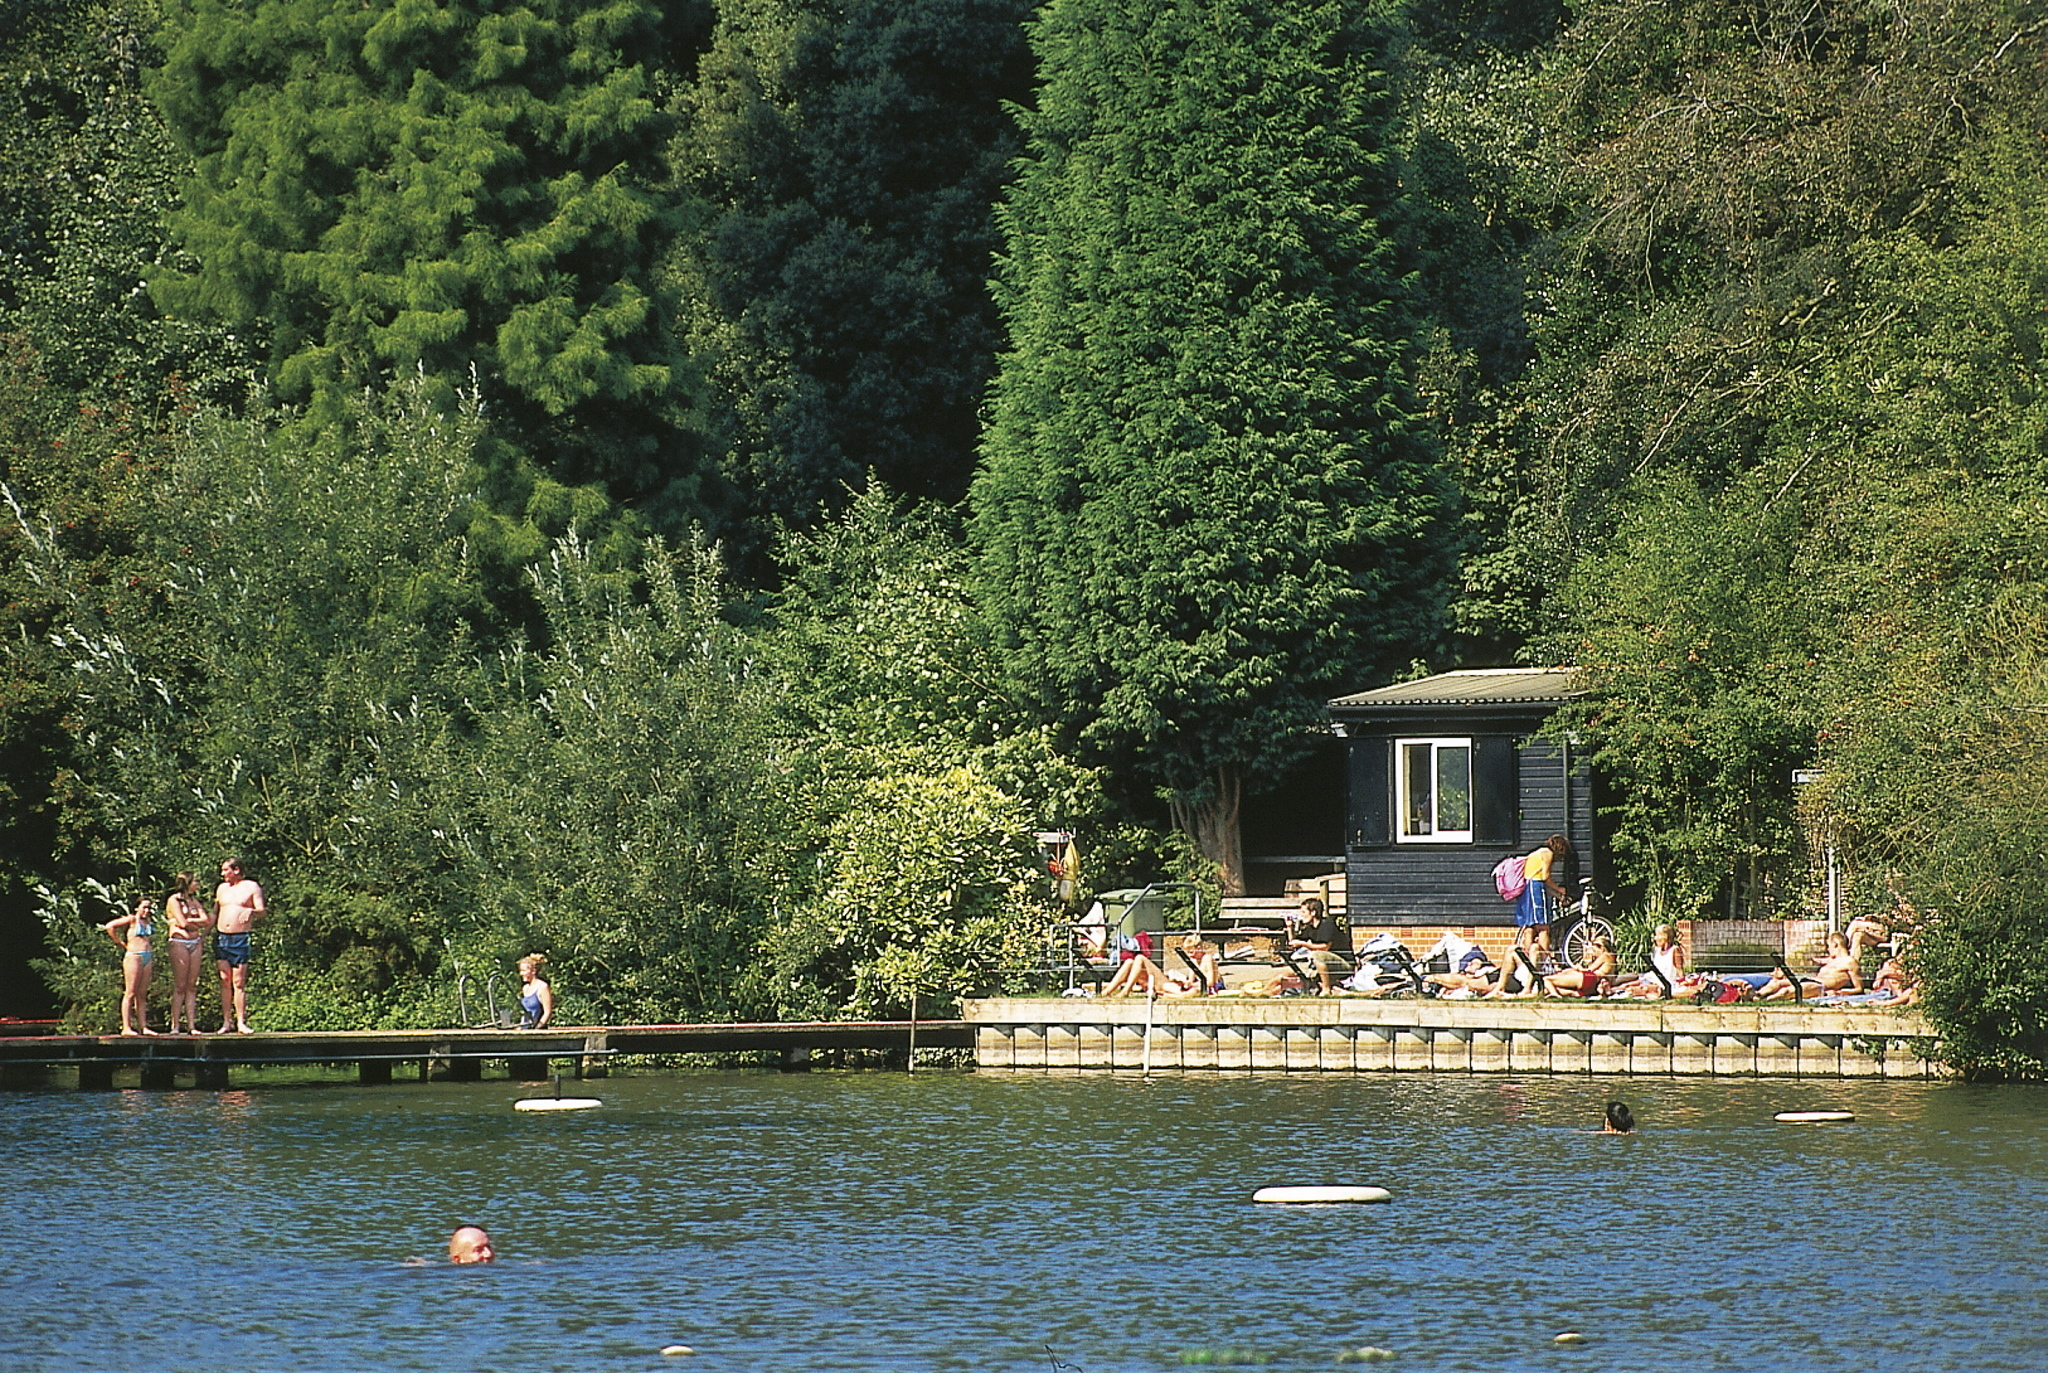 Brave the chilly waters of Hampstead Heath's swimming ponds